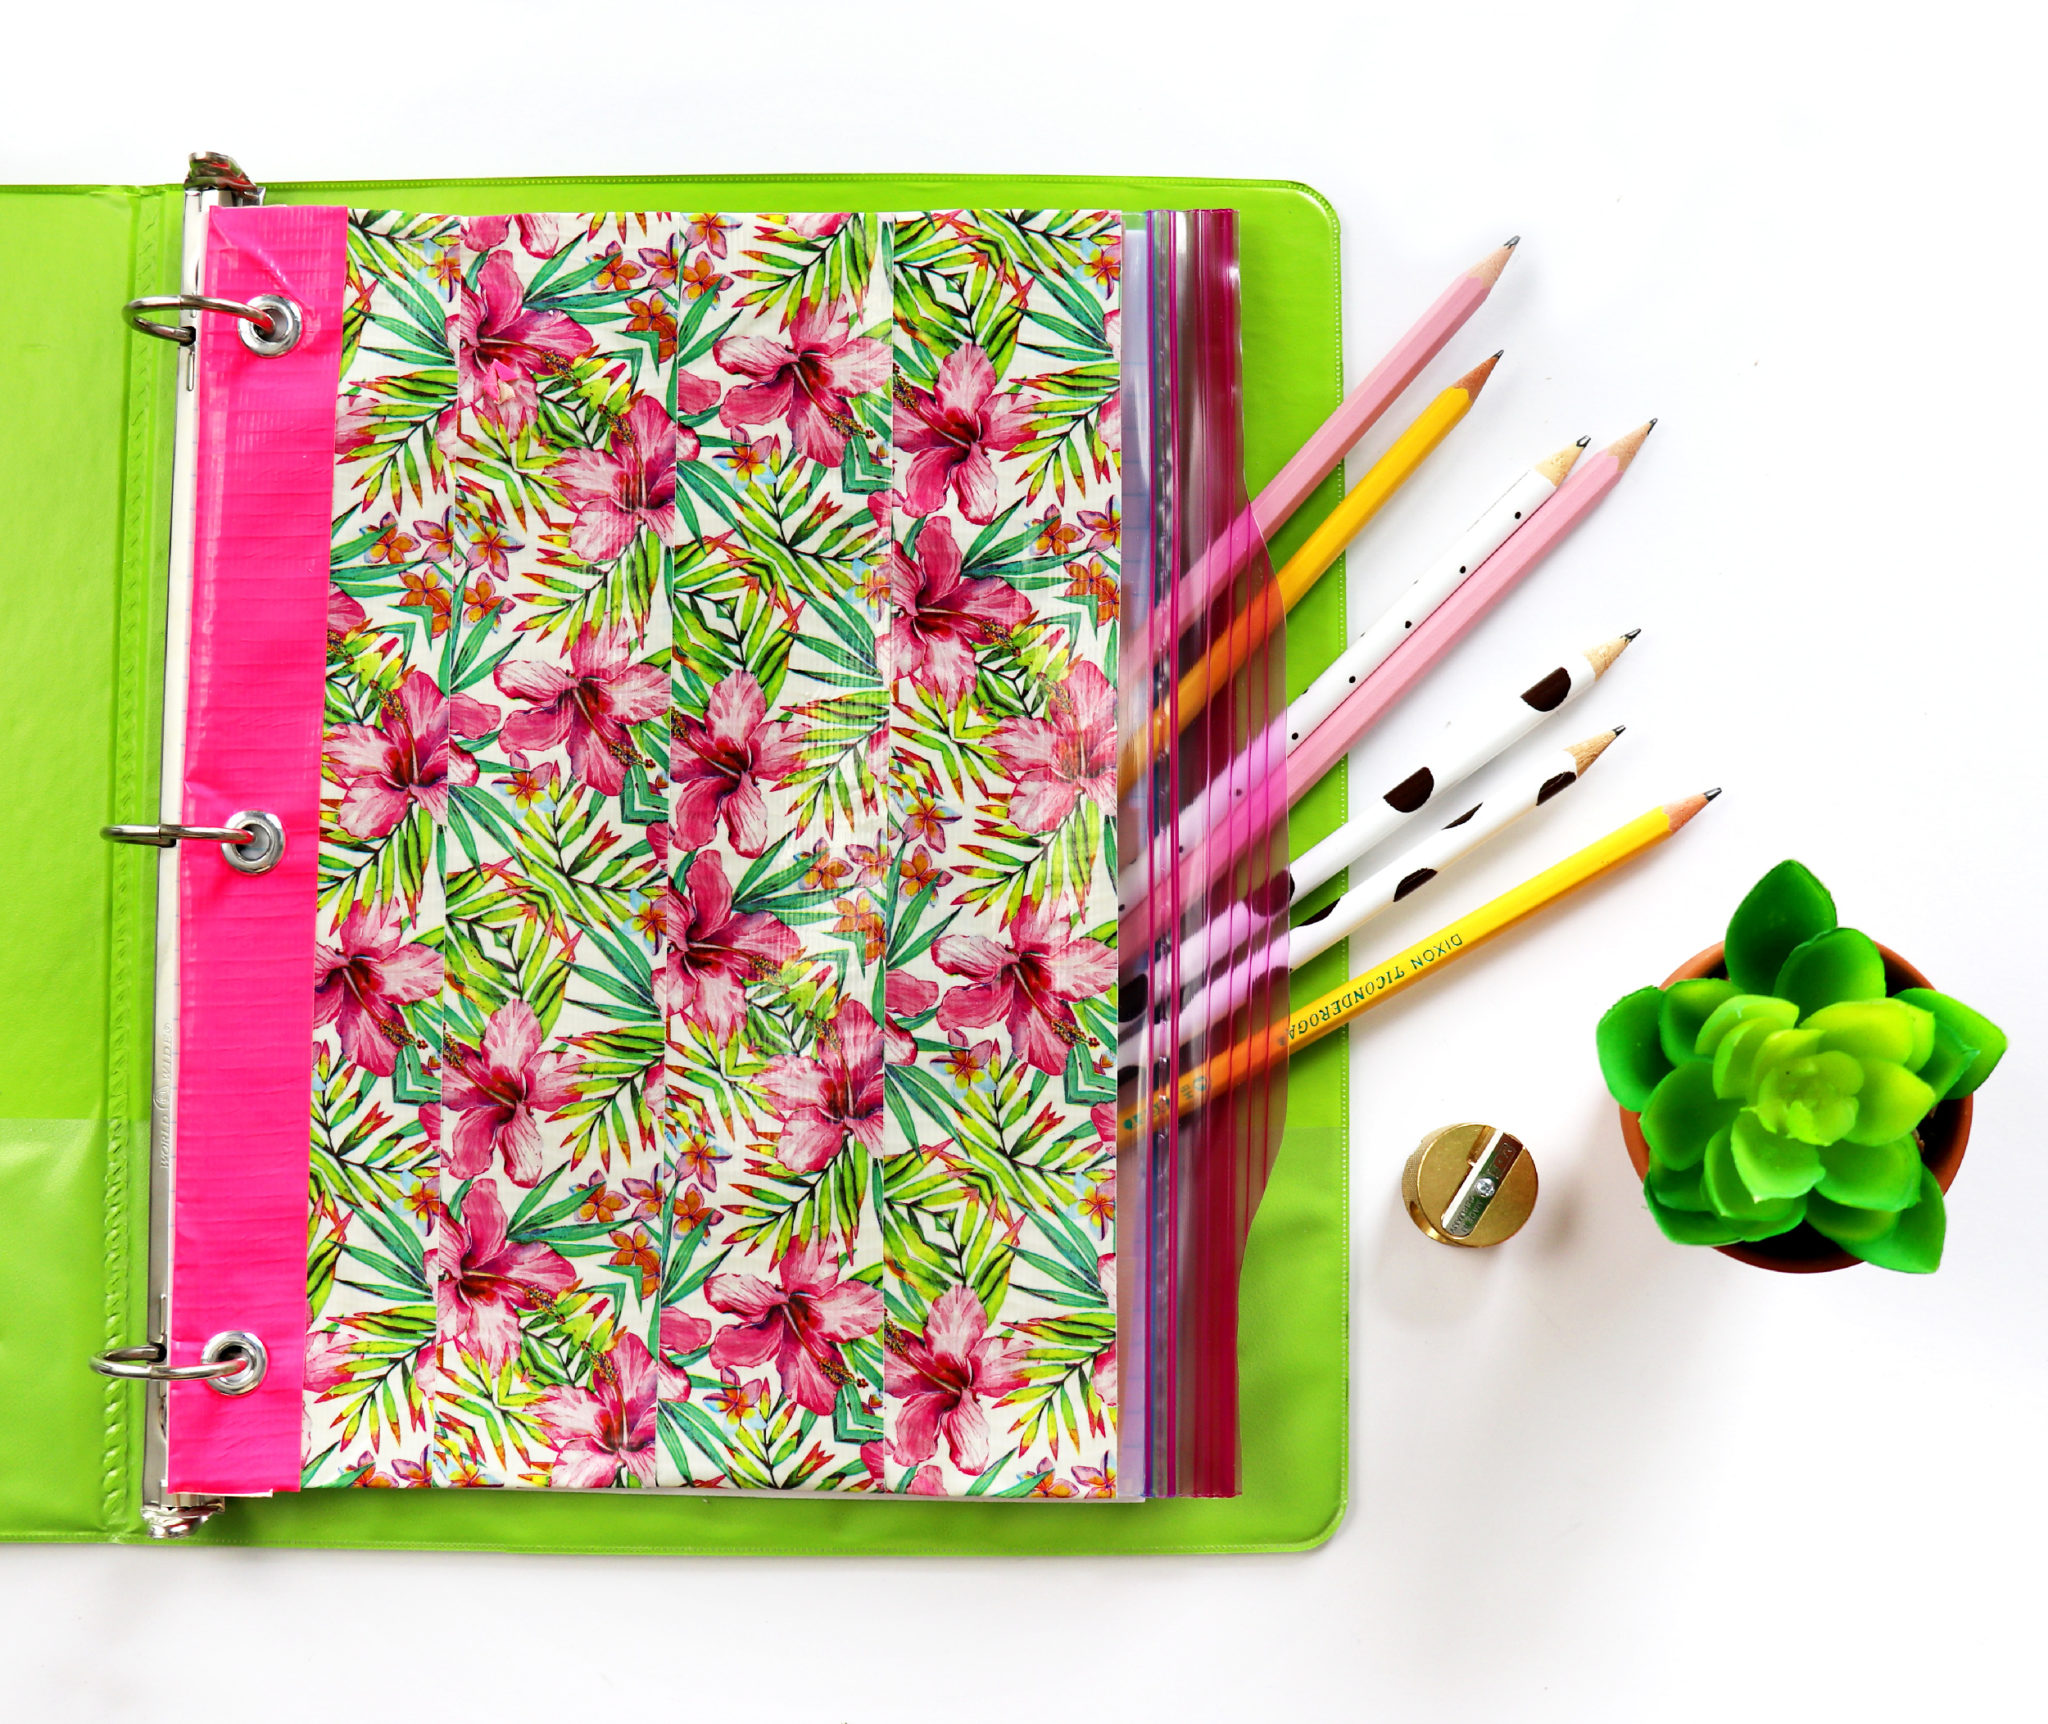 pencil_case_in_binder